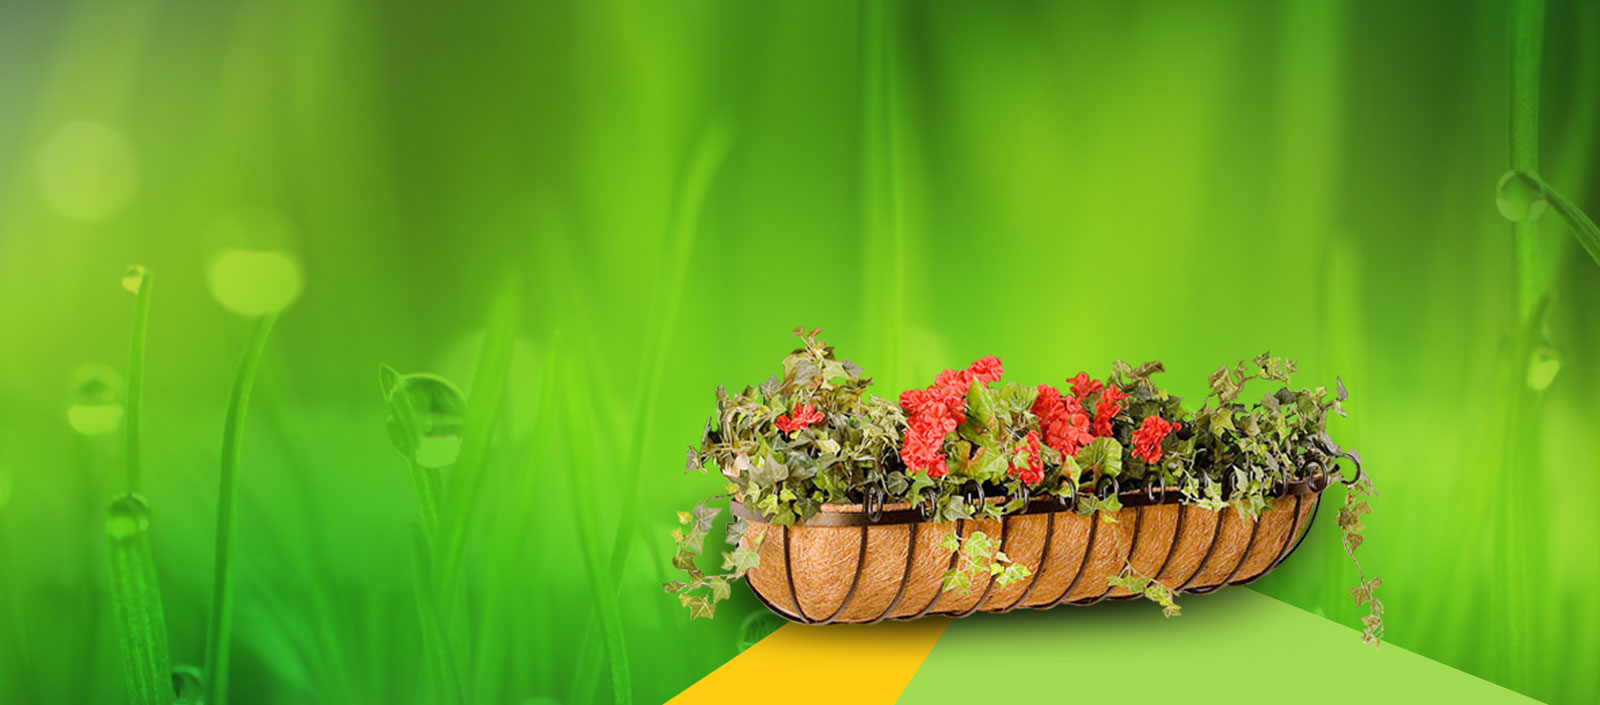 Explore our organic coir gardening products at Gardex 9th International Garden Expo. Tokyo